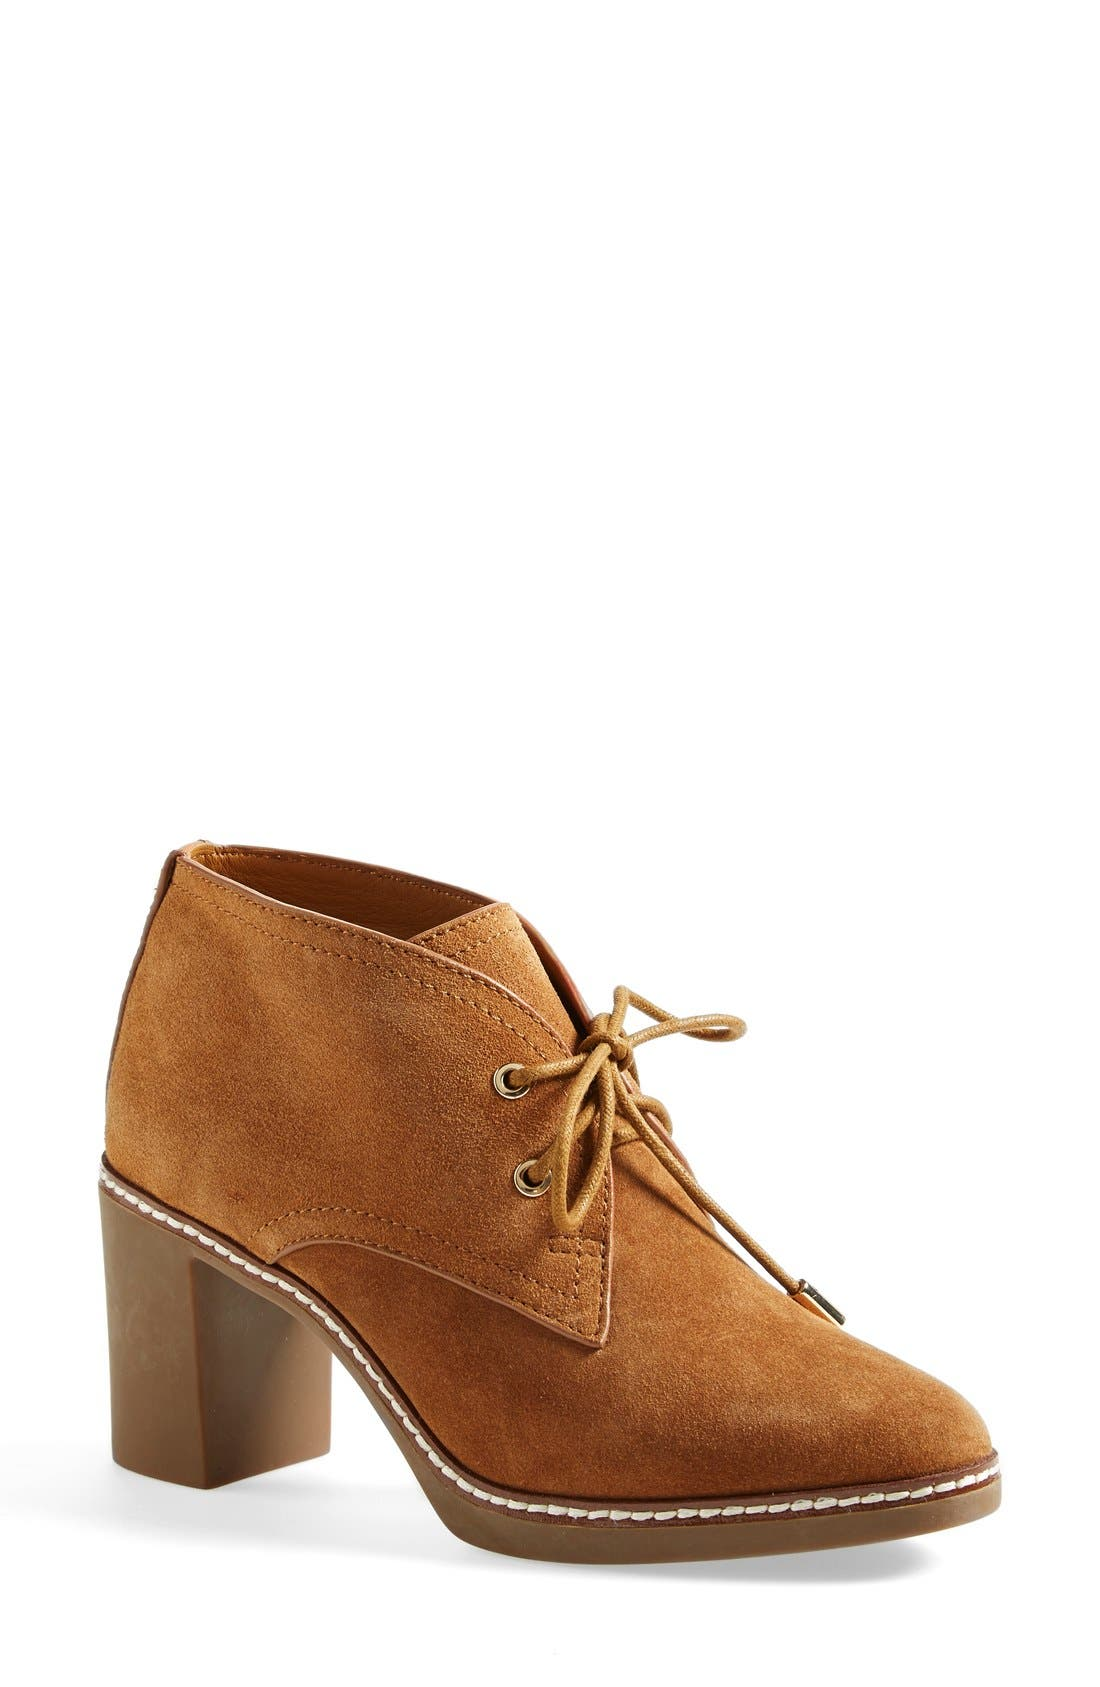 Alternate Image 1 Selected - Tory Burch 'Hilary' Suede Chukka Bootie (Women)